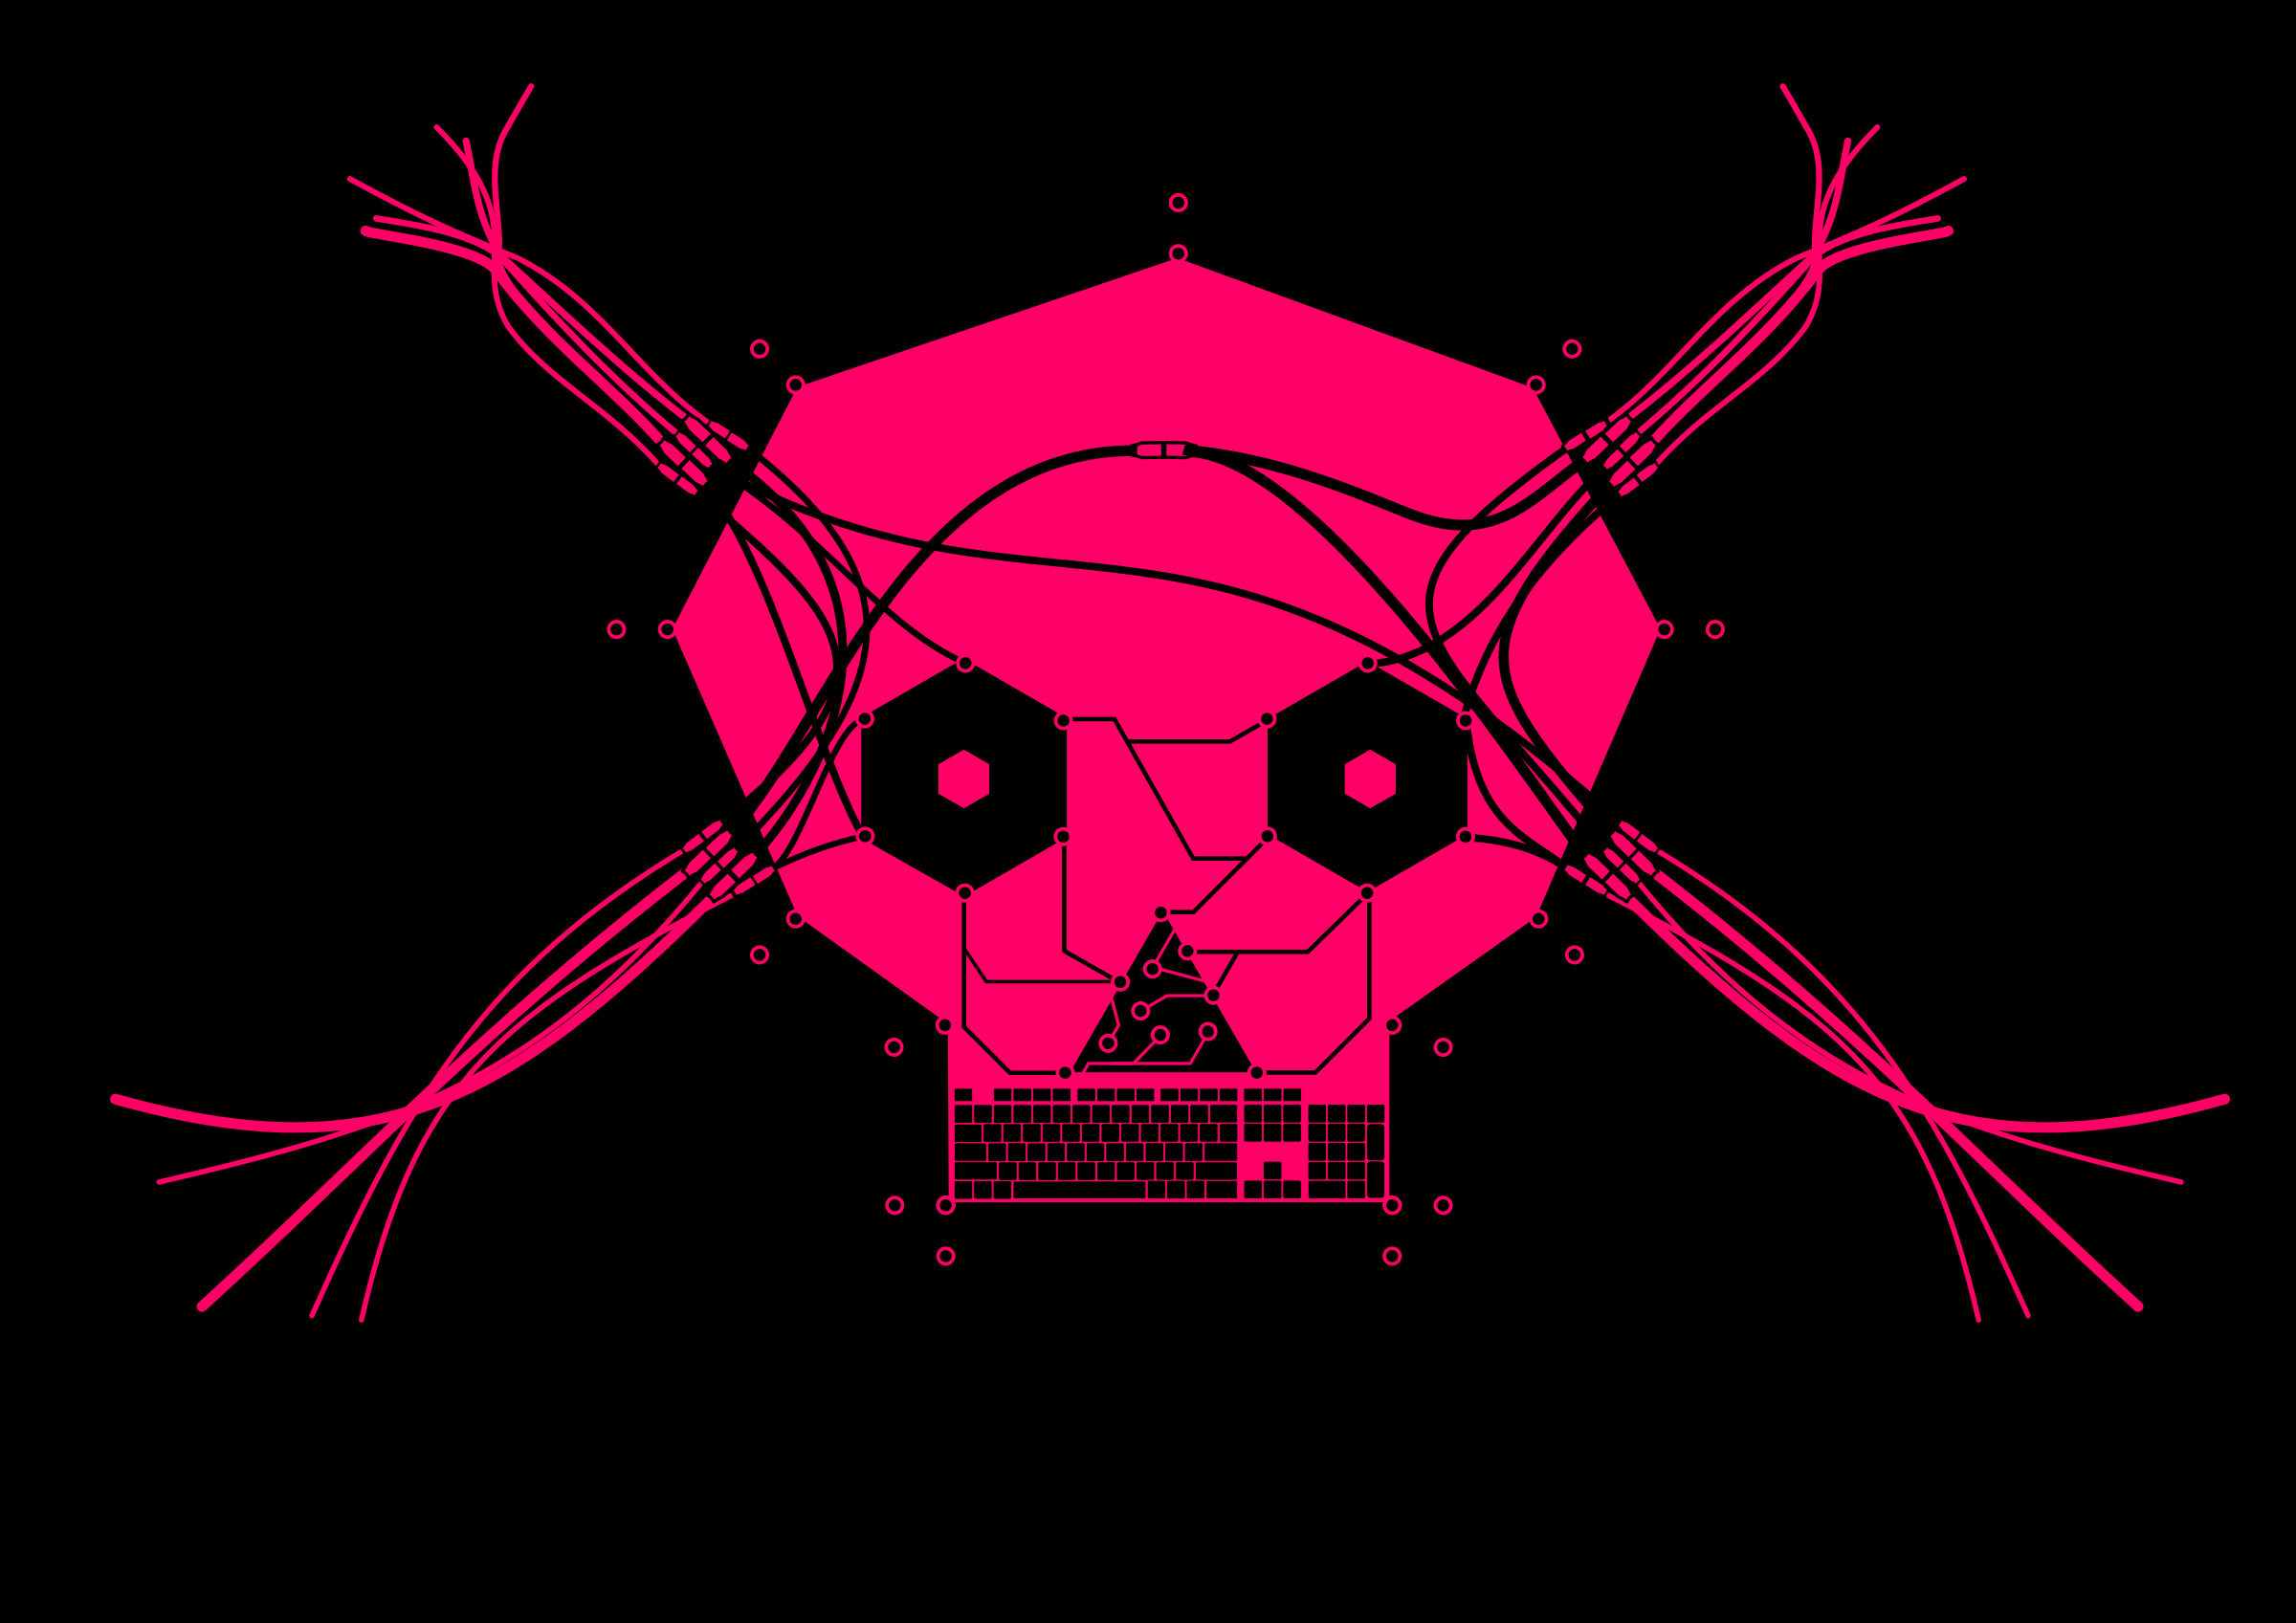 Digitalskull by sonoftroll